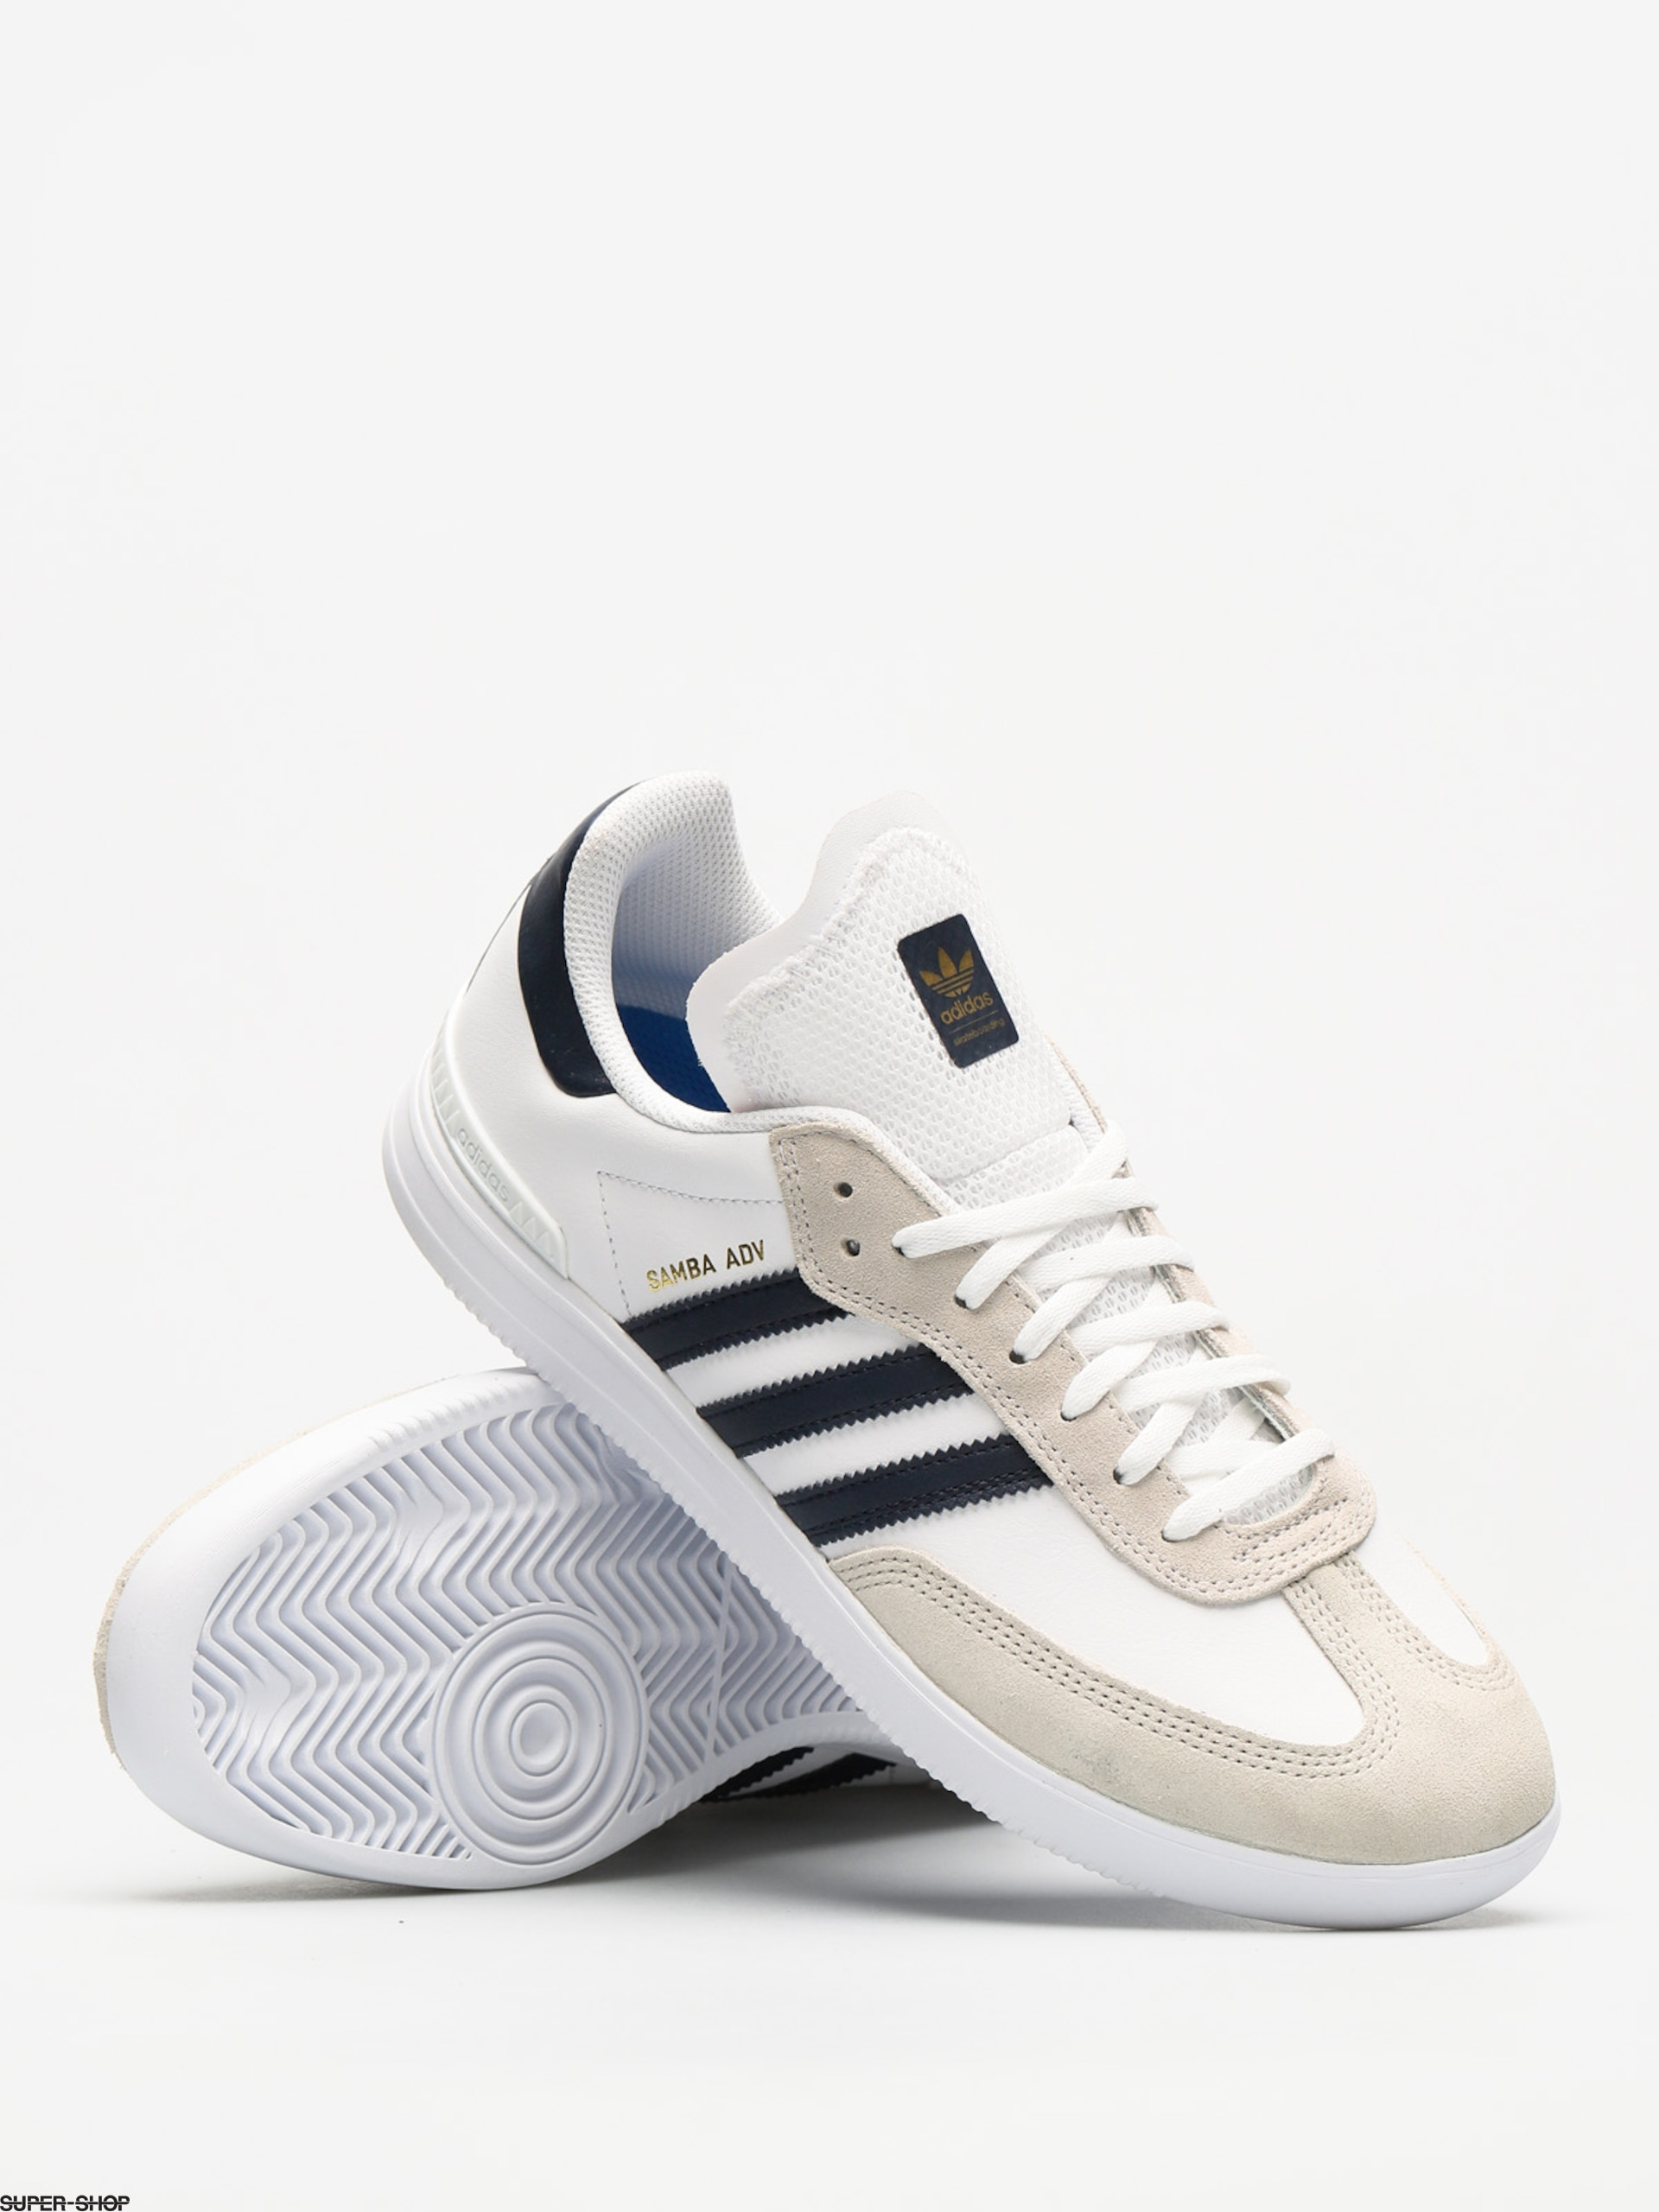 new product 87d7a 80f30 adidas Shoes Samba Adv (ftwr white collegiate navy gold met.)